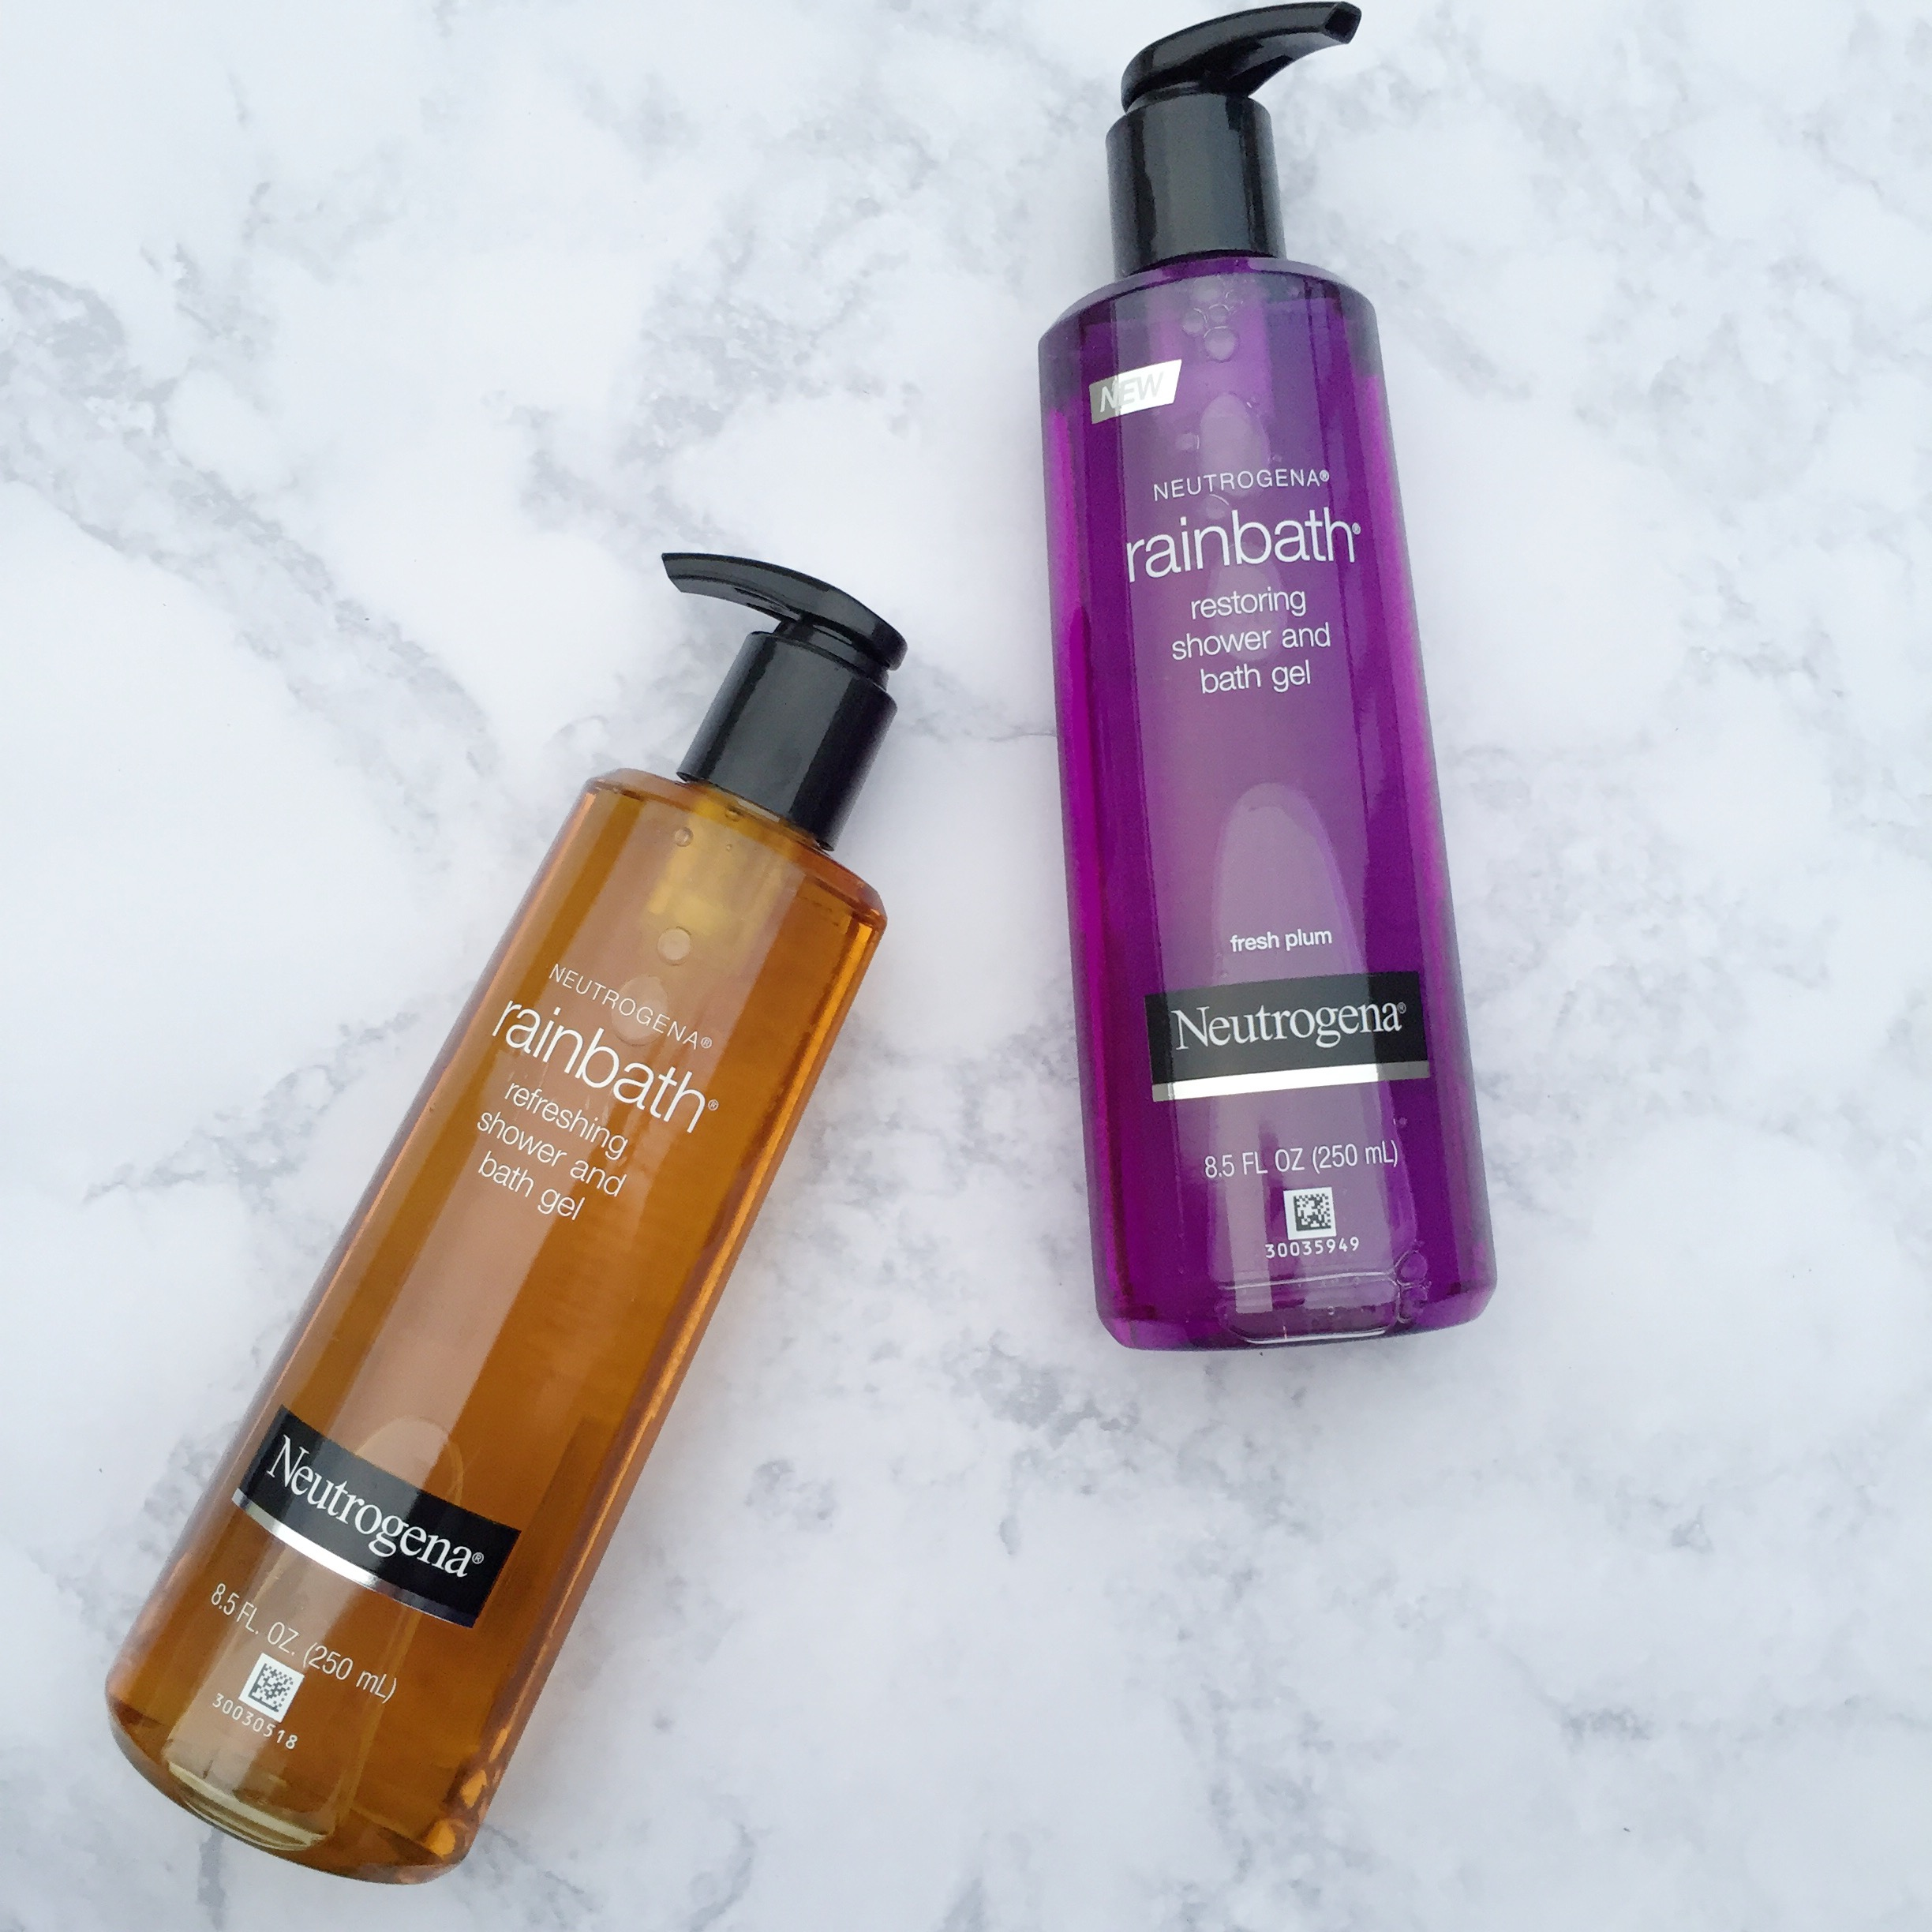 Neutrogena Rainbath Review_pamper Yourself for fall